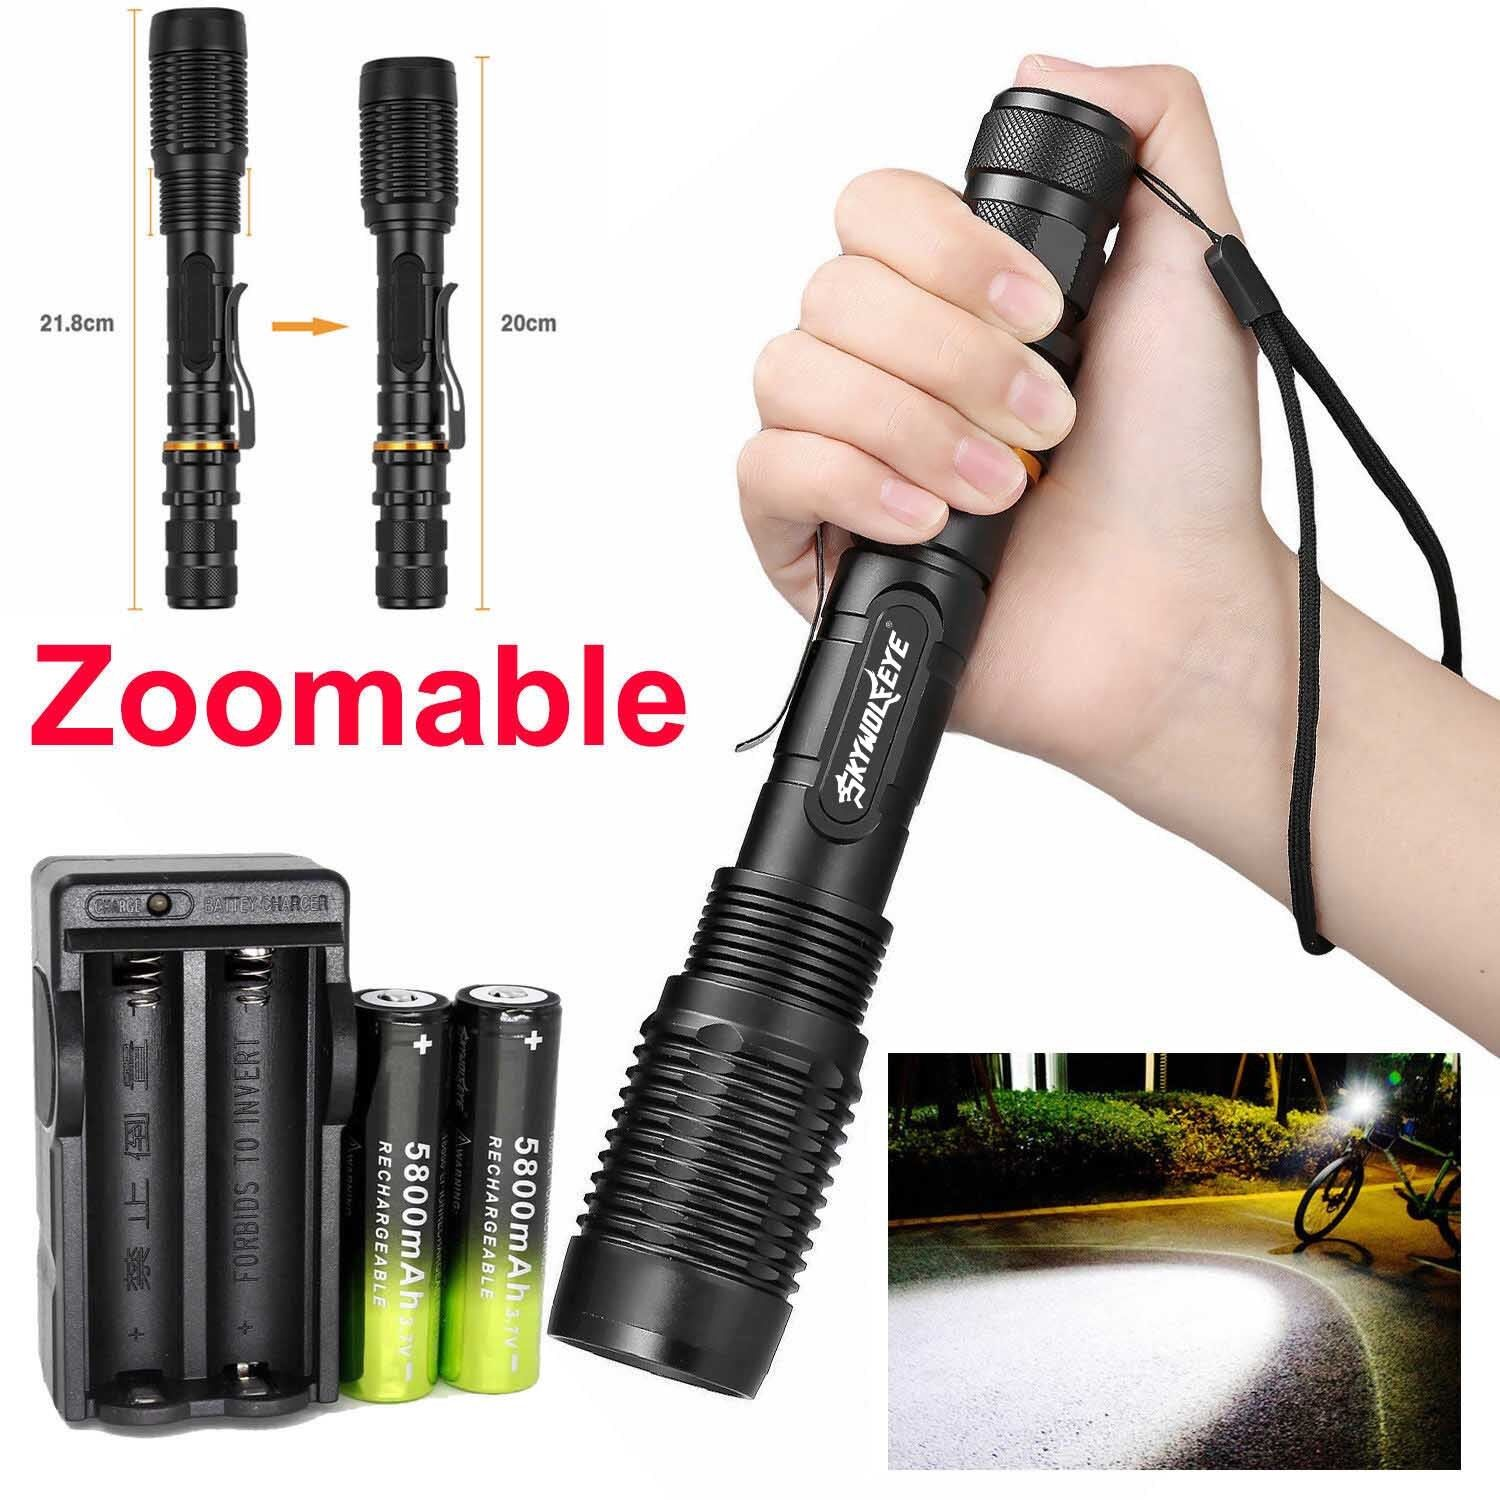 Zoomable 50000 Lumens High Power T6 LED Flashlight Torch 18650 Battery Charger Z